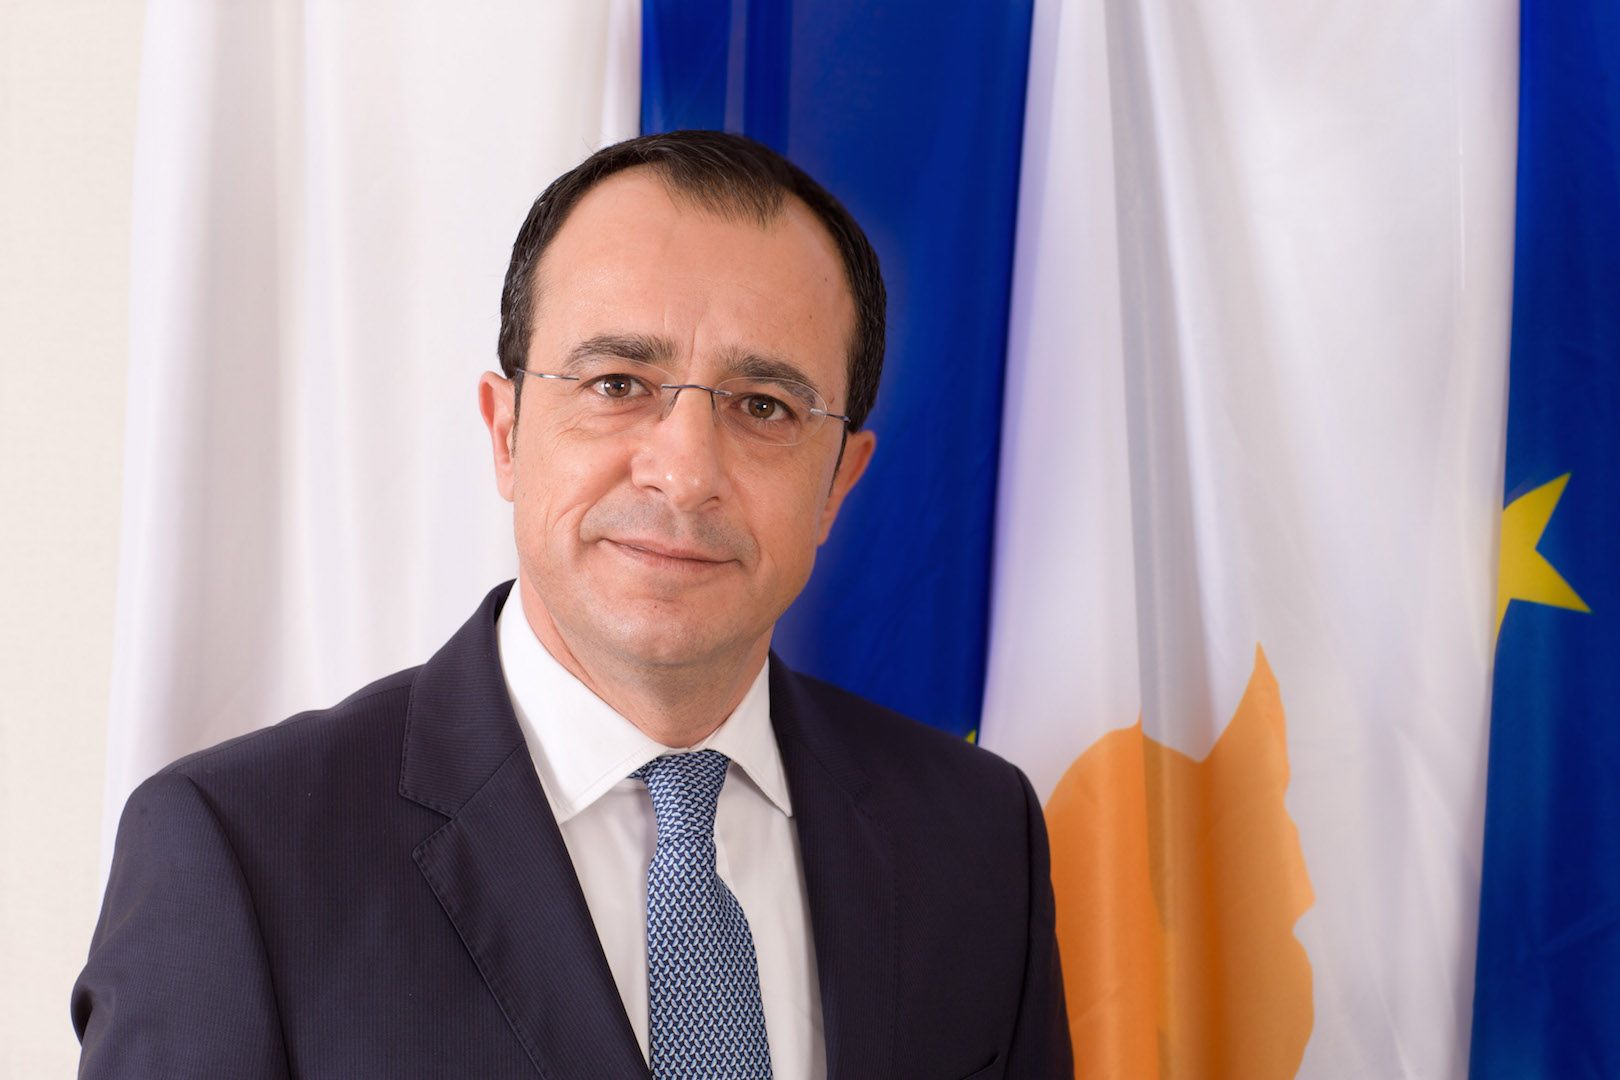 Nikos Christodoulides on an official visit to Italy on Wednesday